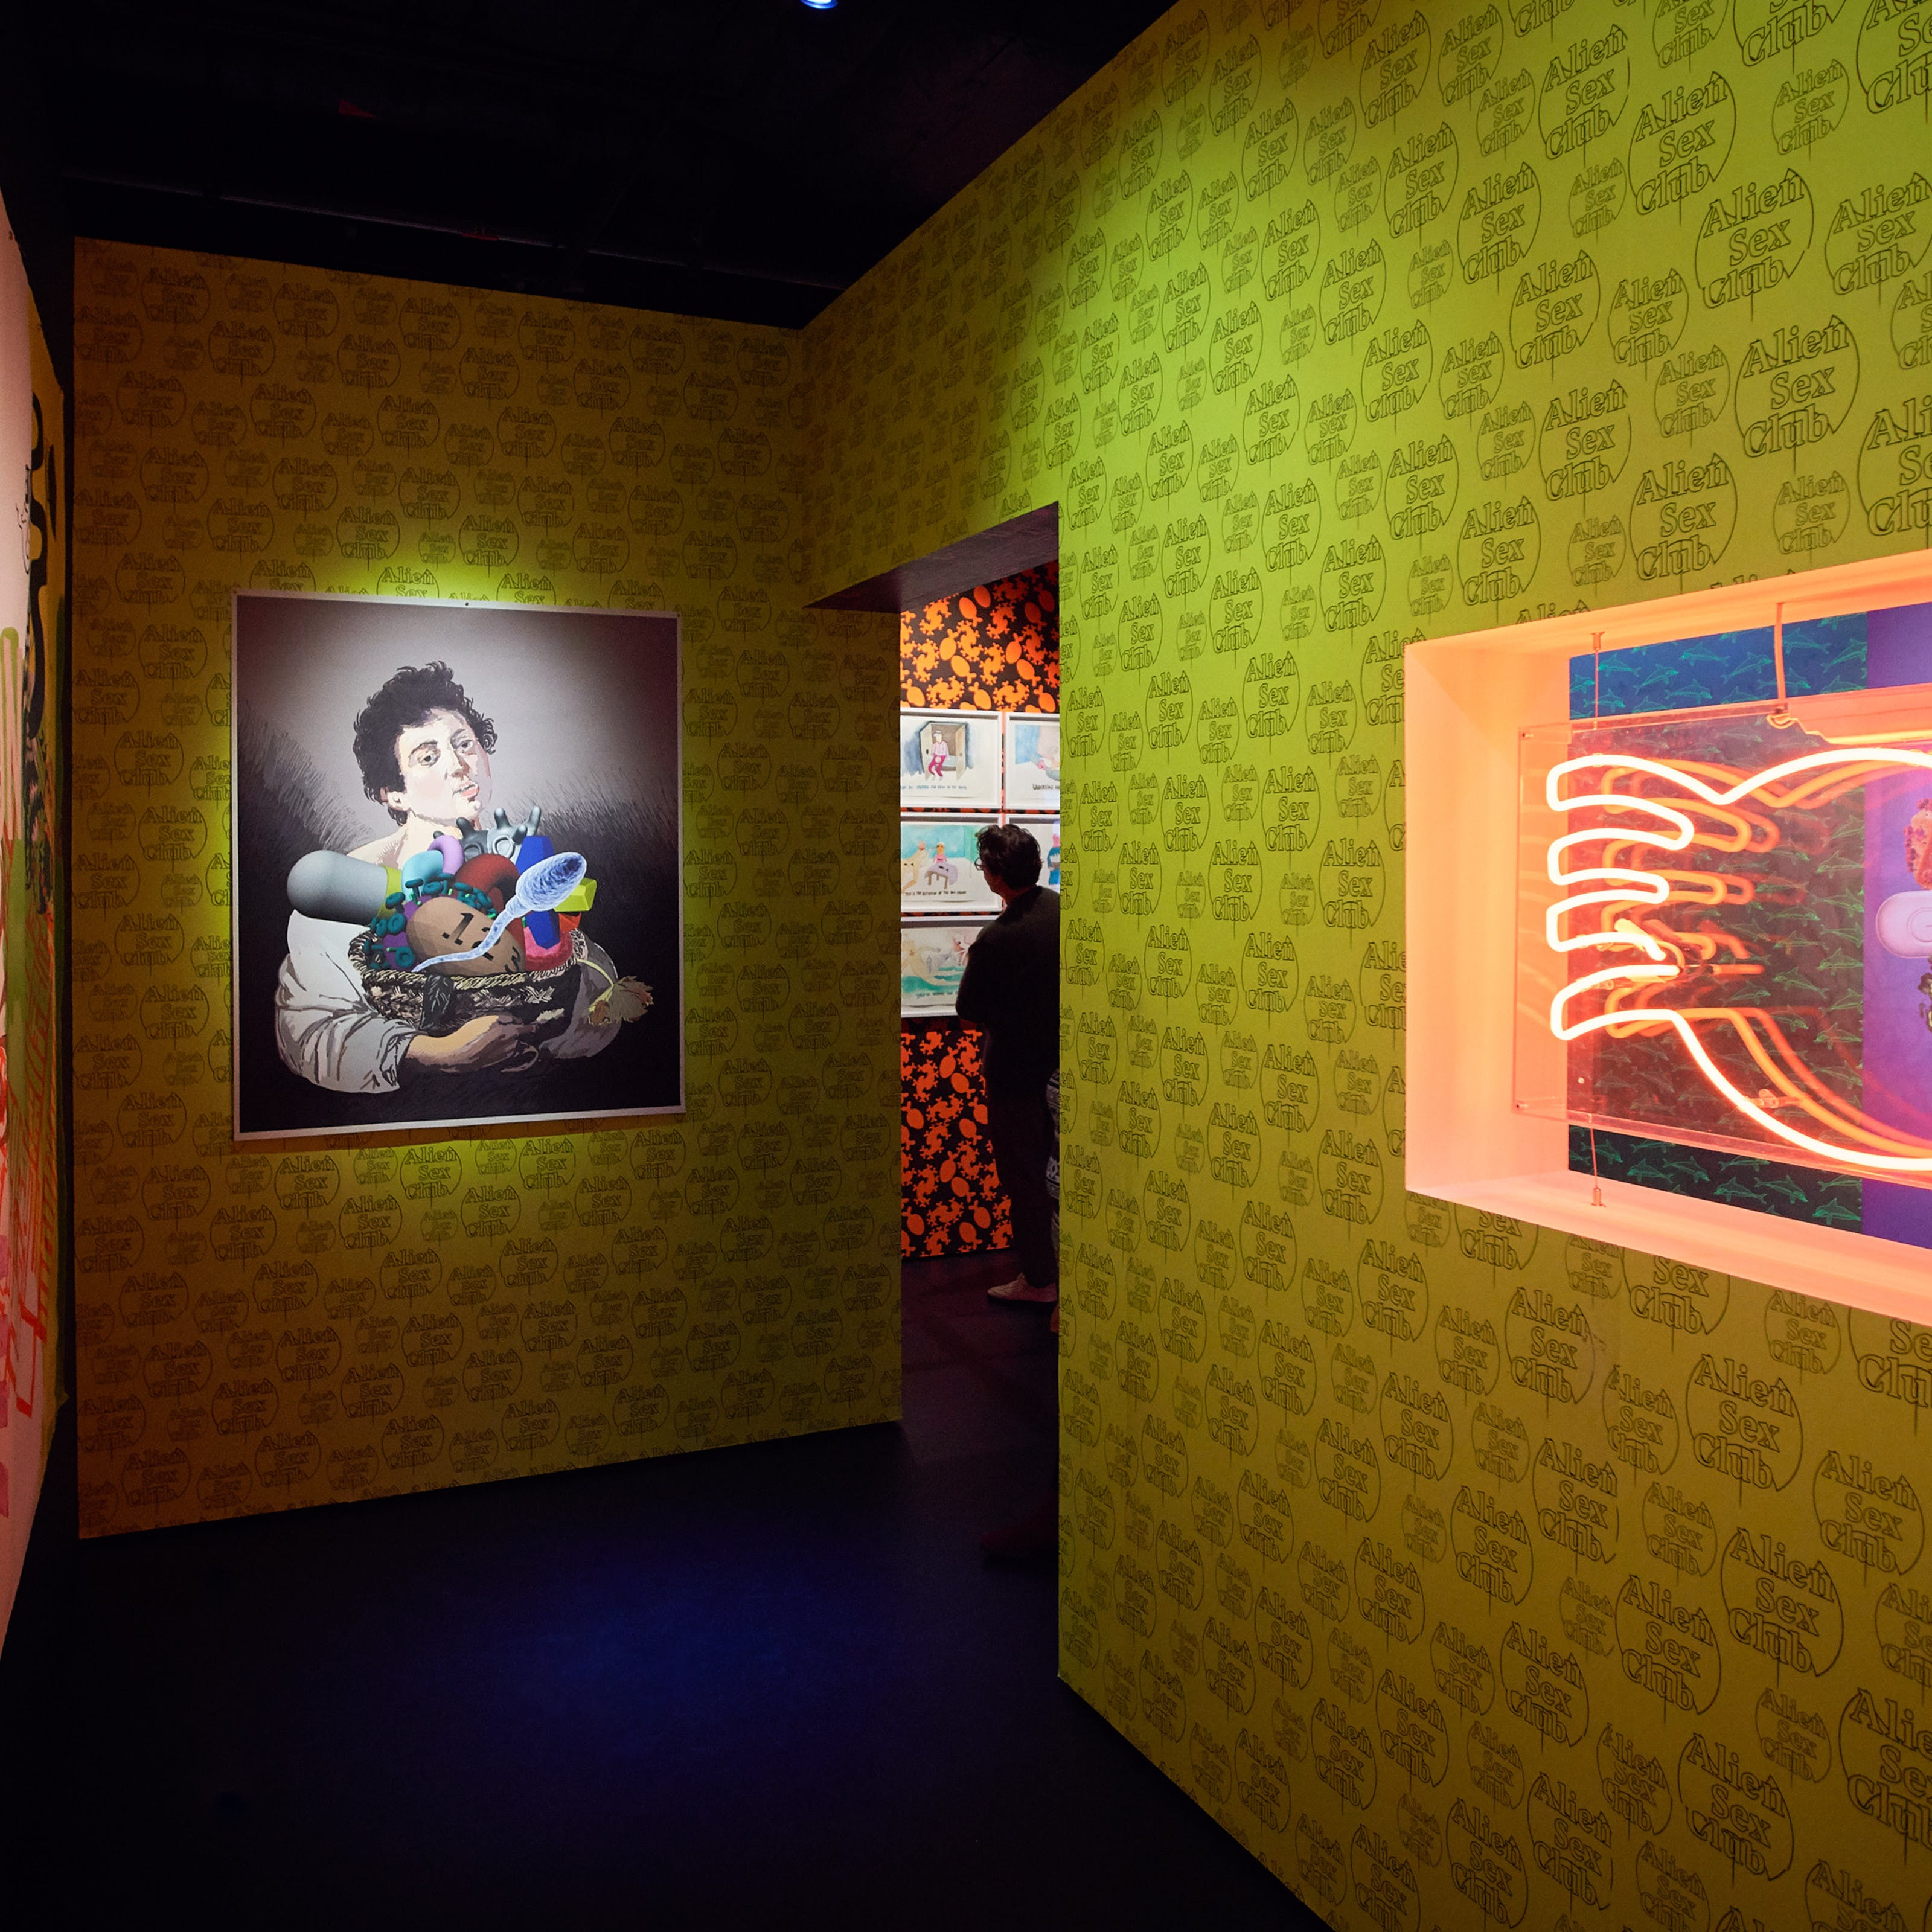 Photograph of a visitor in the distance looking at framed artworks on the wall. In the foreground is colourful patterned wallpaper, a work of art and a red neon exhibit.